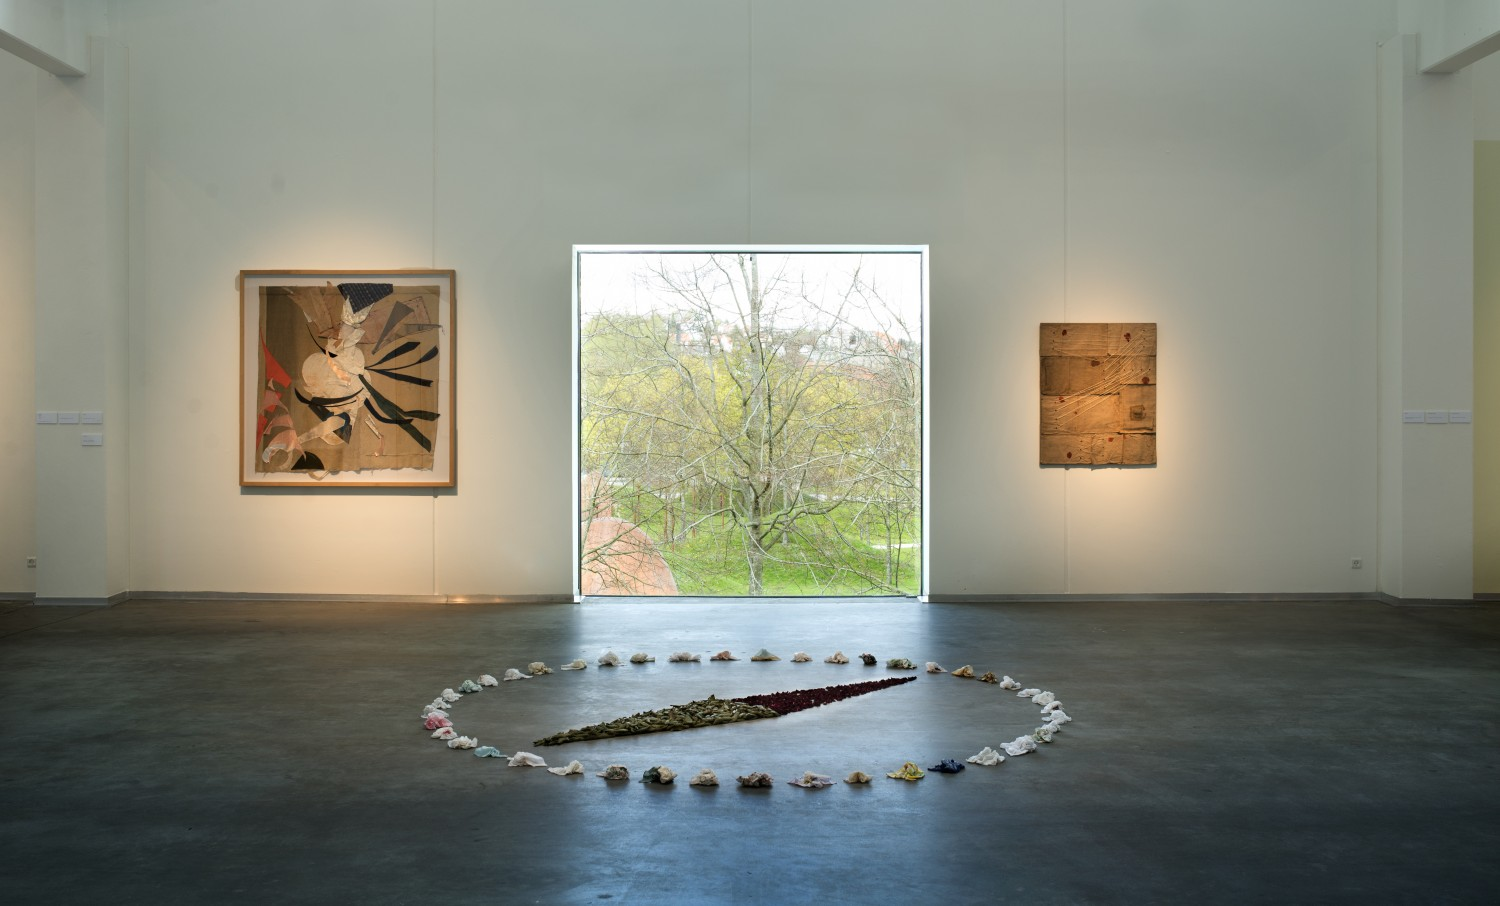 Compass, Museum of Art, Vejle, 2015